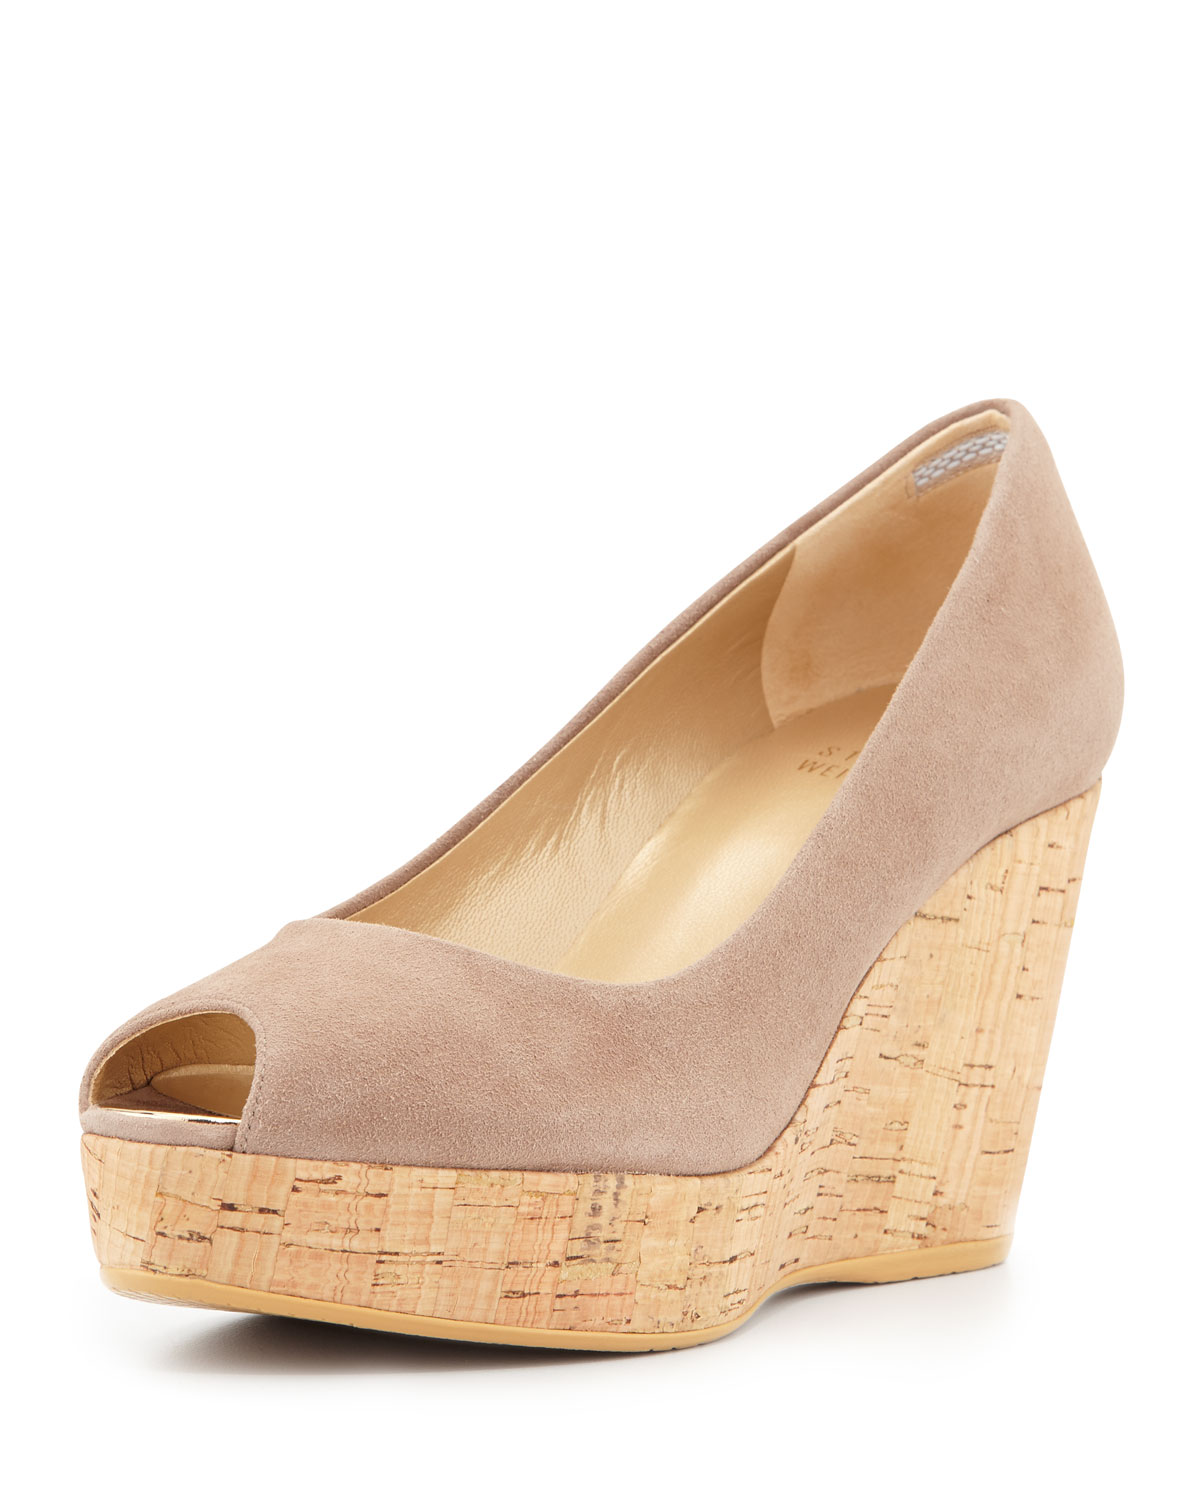 Stuart Weitzman Perforated Wedge Pumps cheap sale wholesale price get authentic for sale genuine for sale exclusive sale online zpAxa